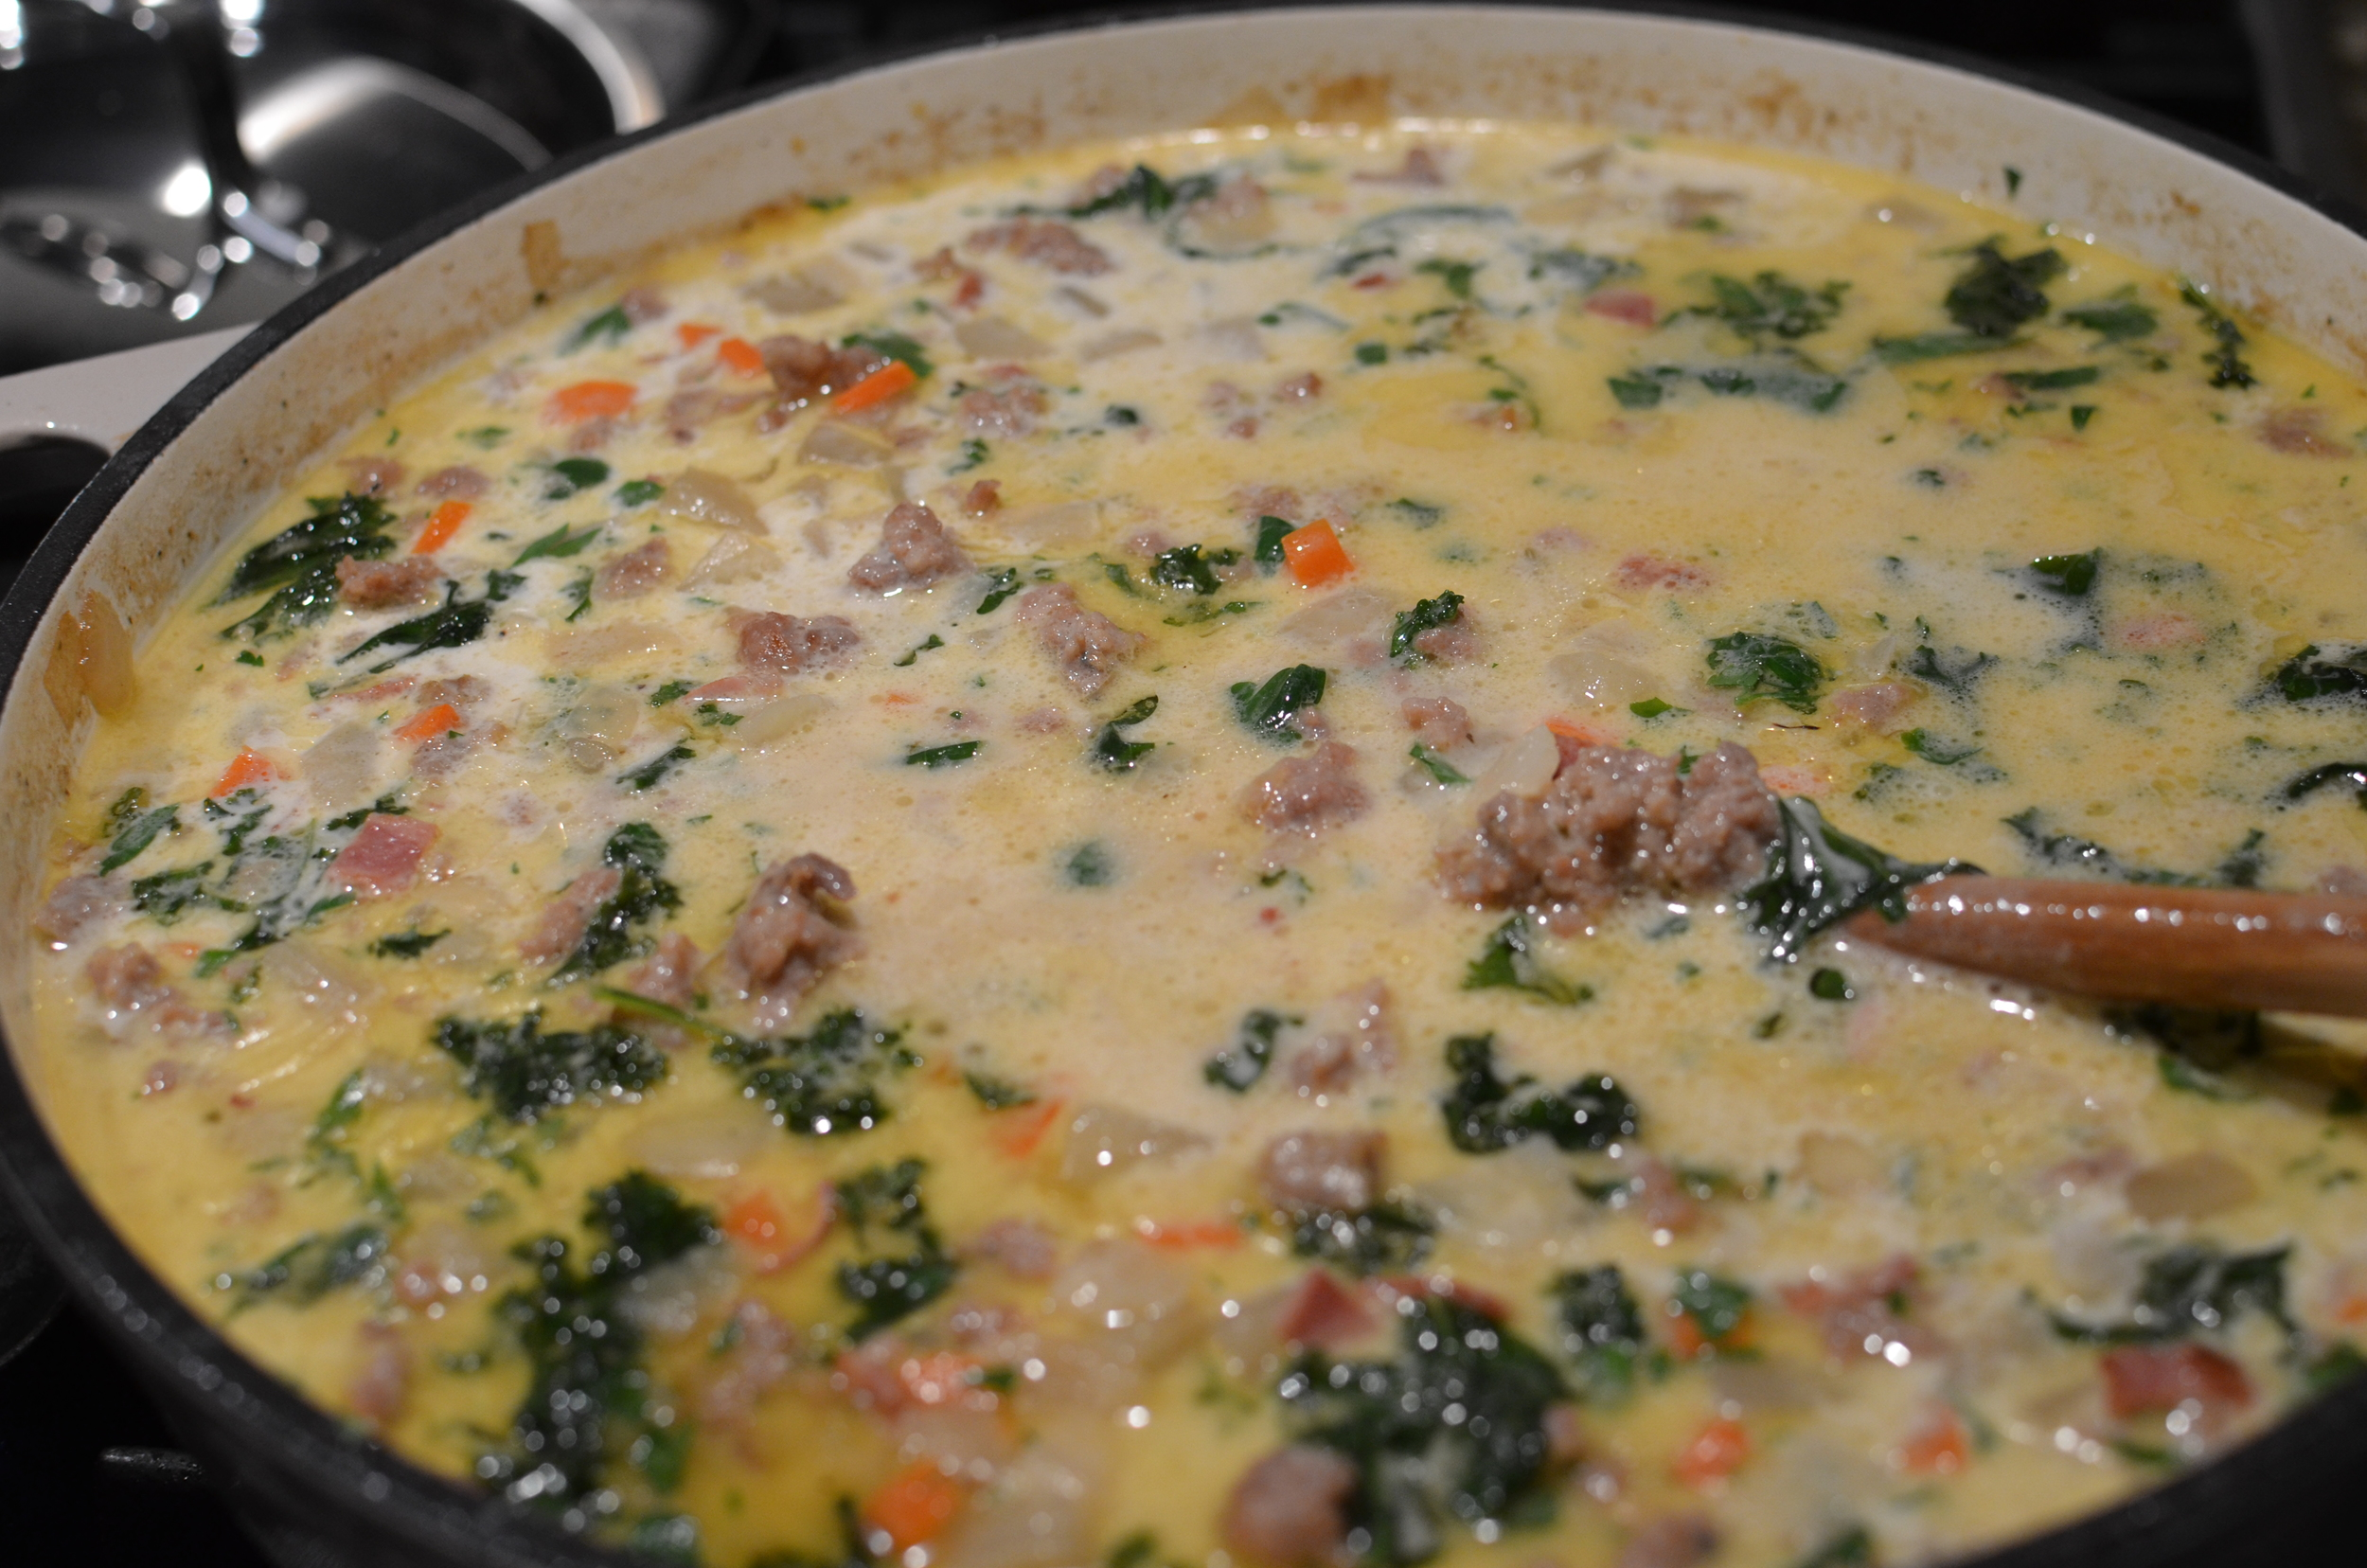 copycat zuppa toscana recipe with how-to photos